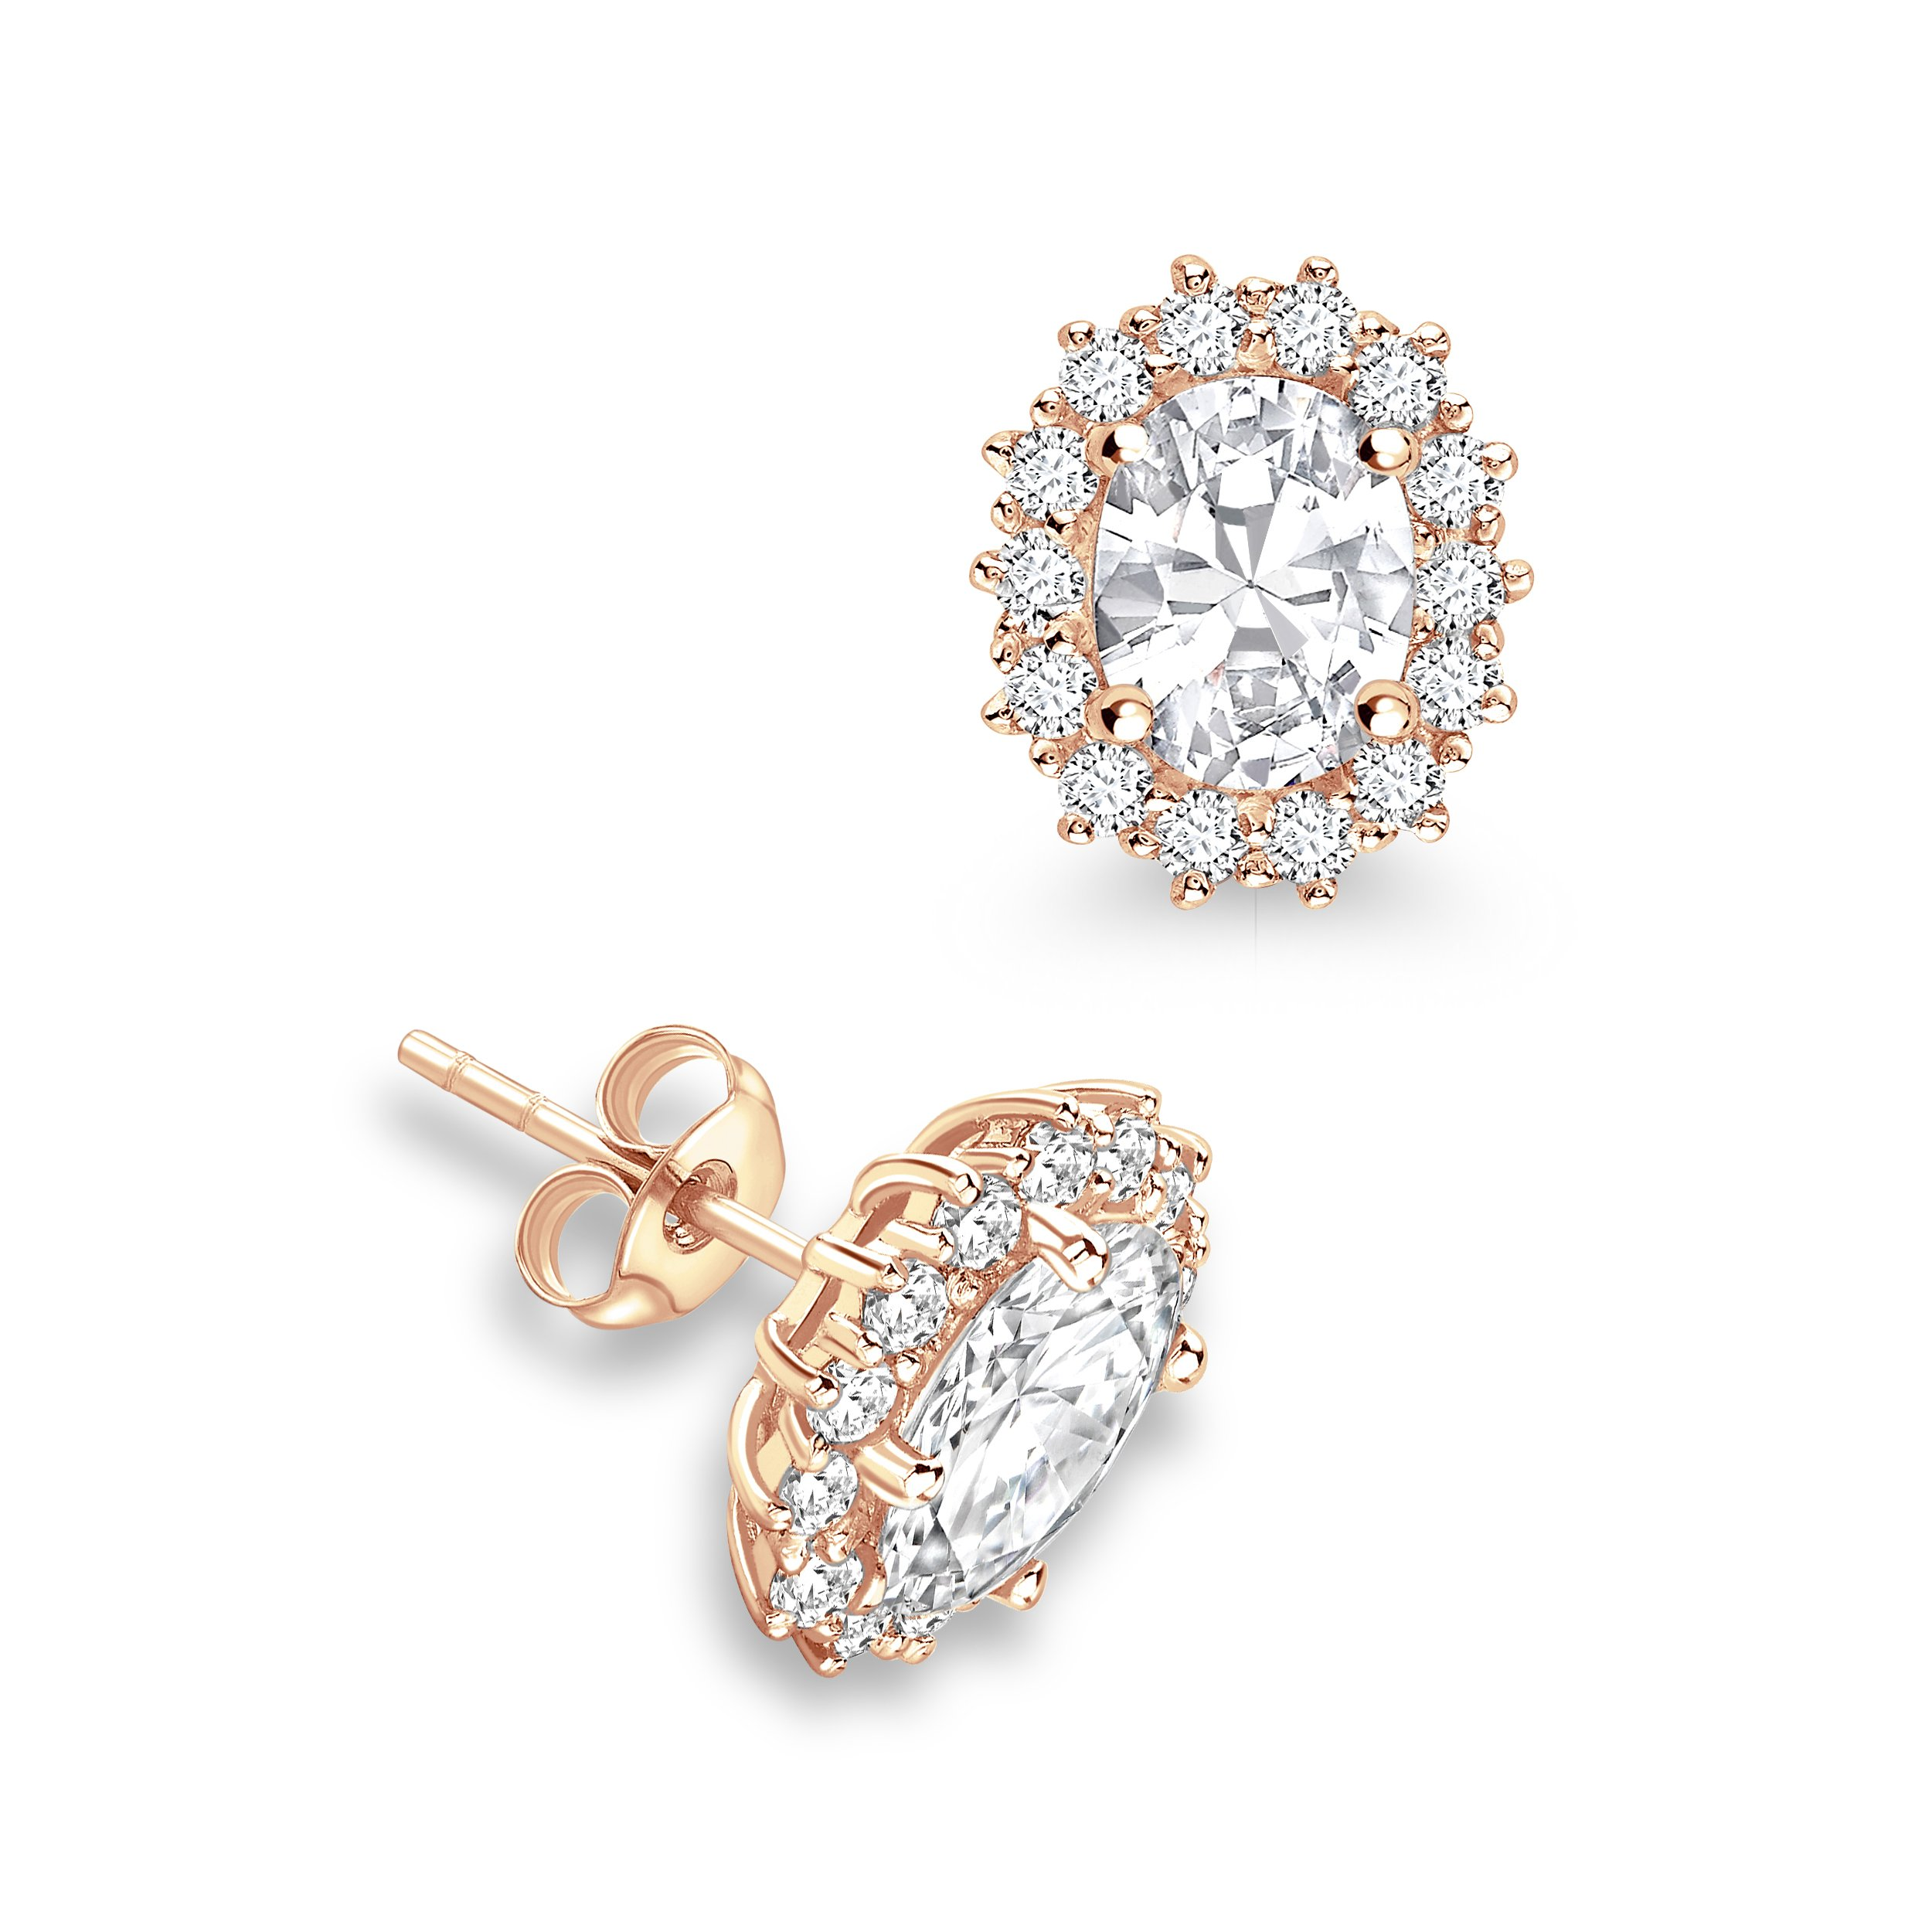 Prong Setting Oval Shape Halo Diamond Earrings Available in White, Yellow, Rose Gold and Platinum